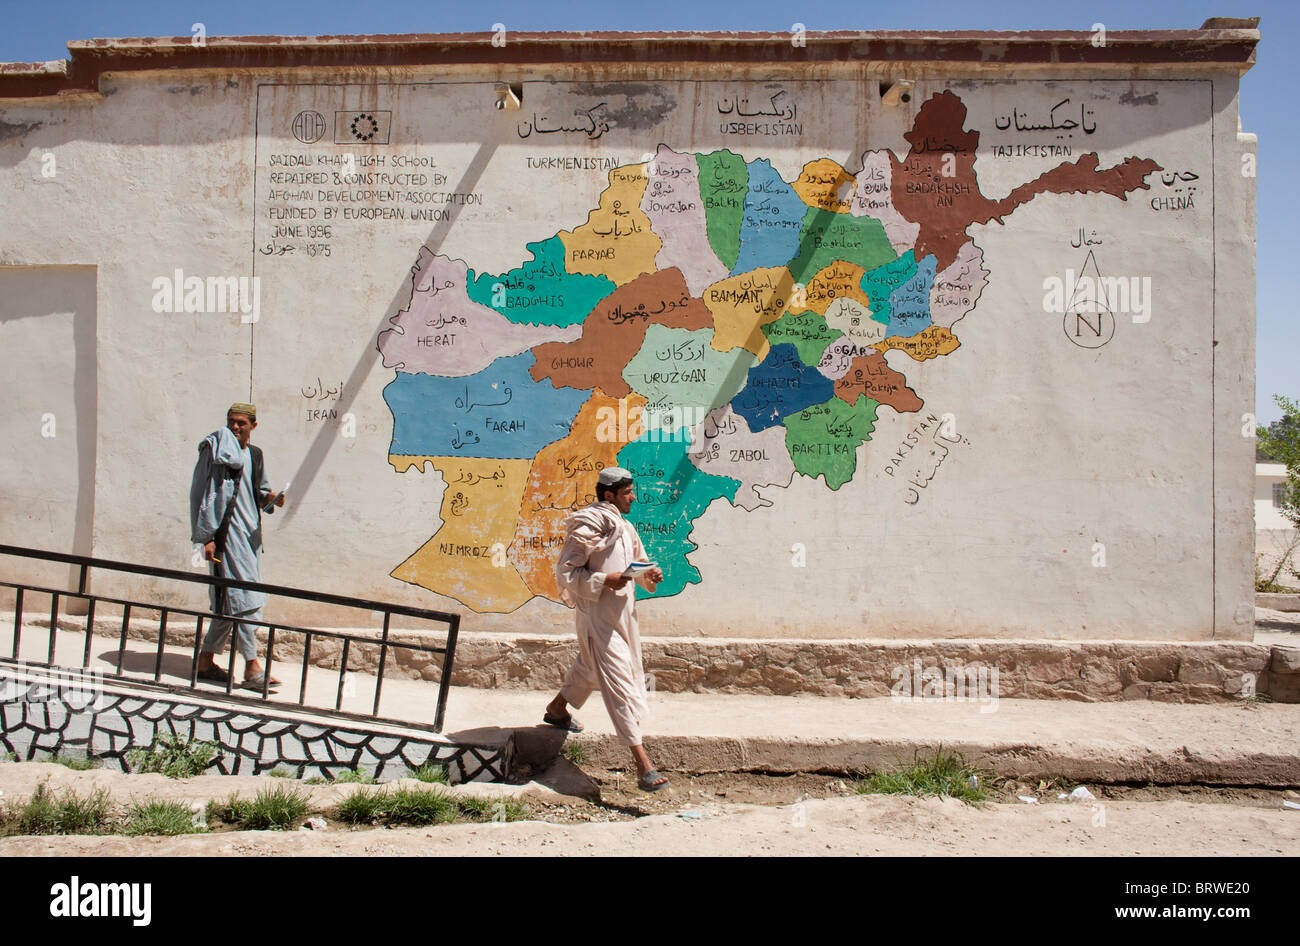 secondary school in Afghanistan - Stock Image